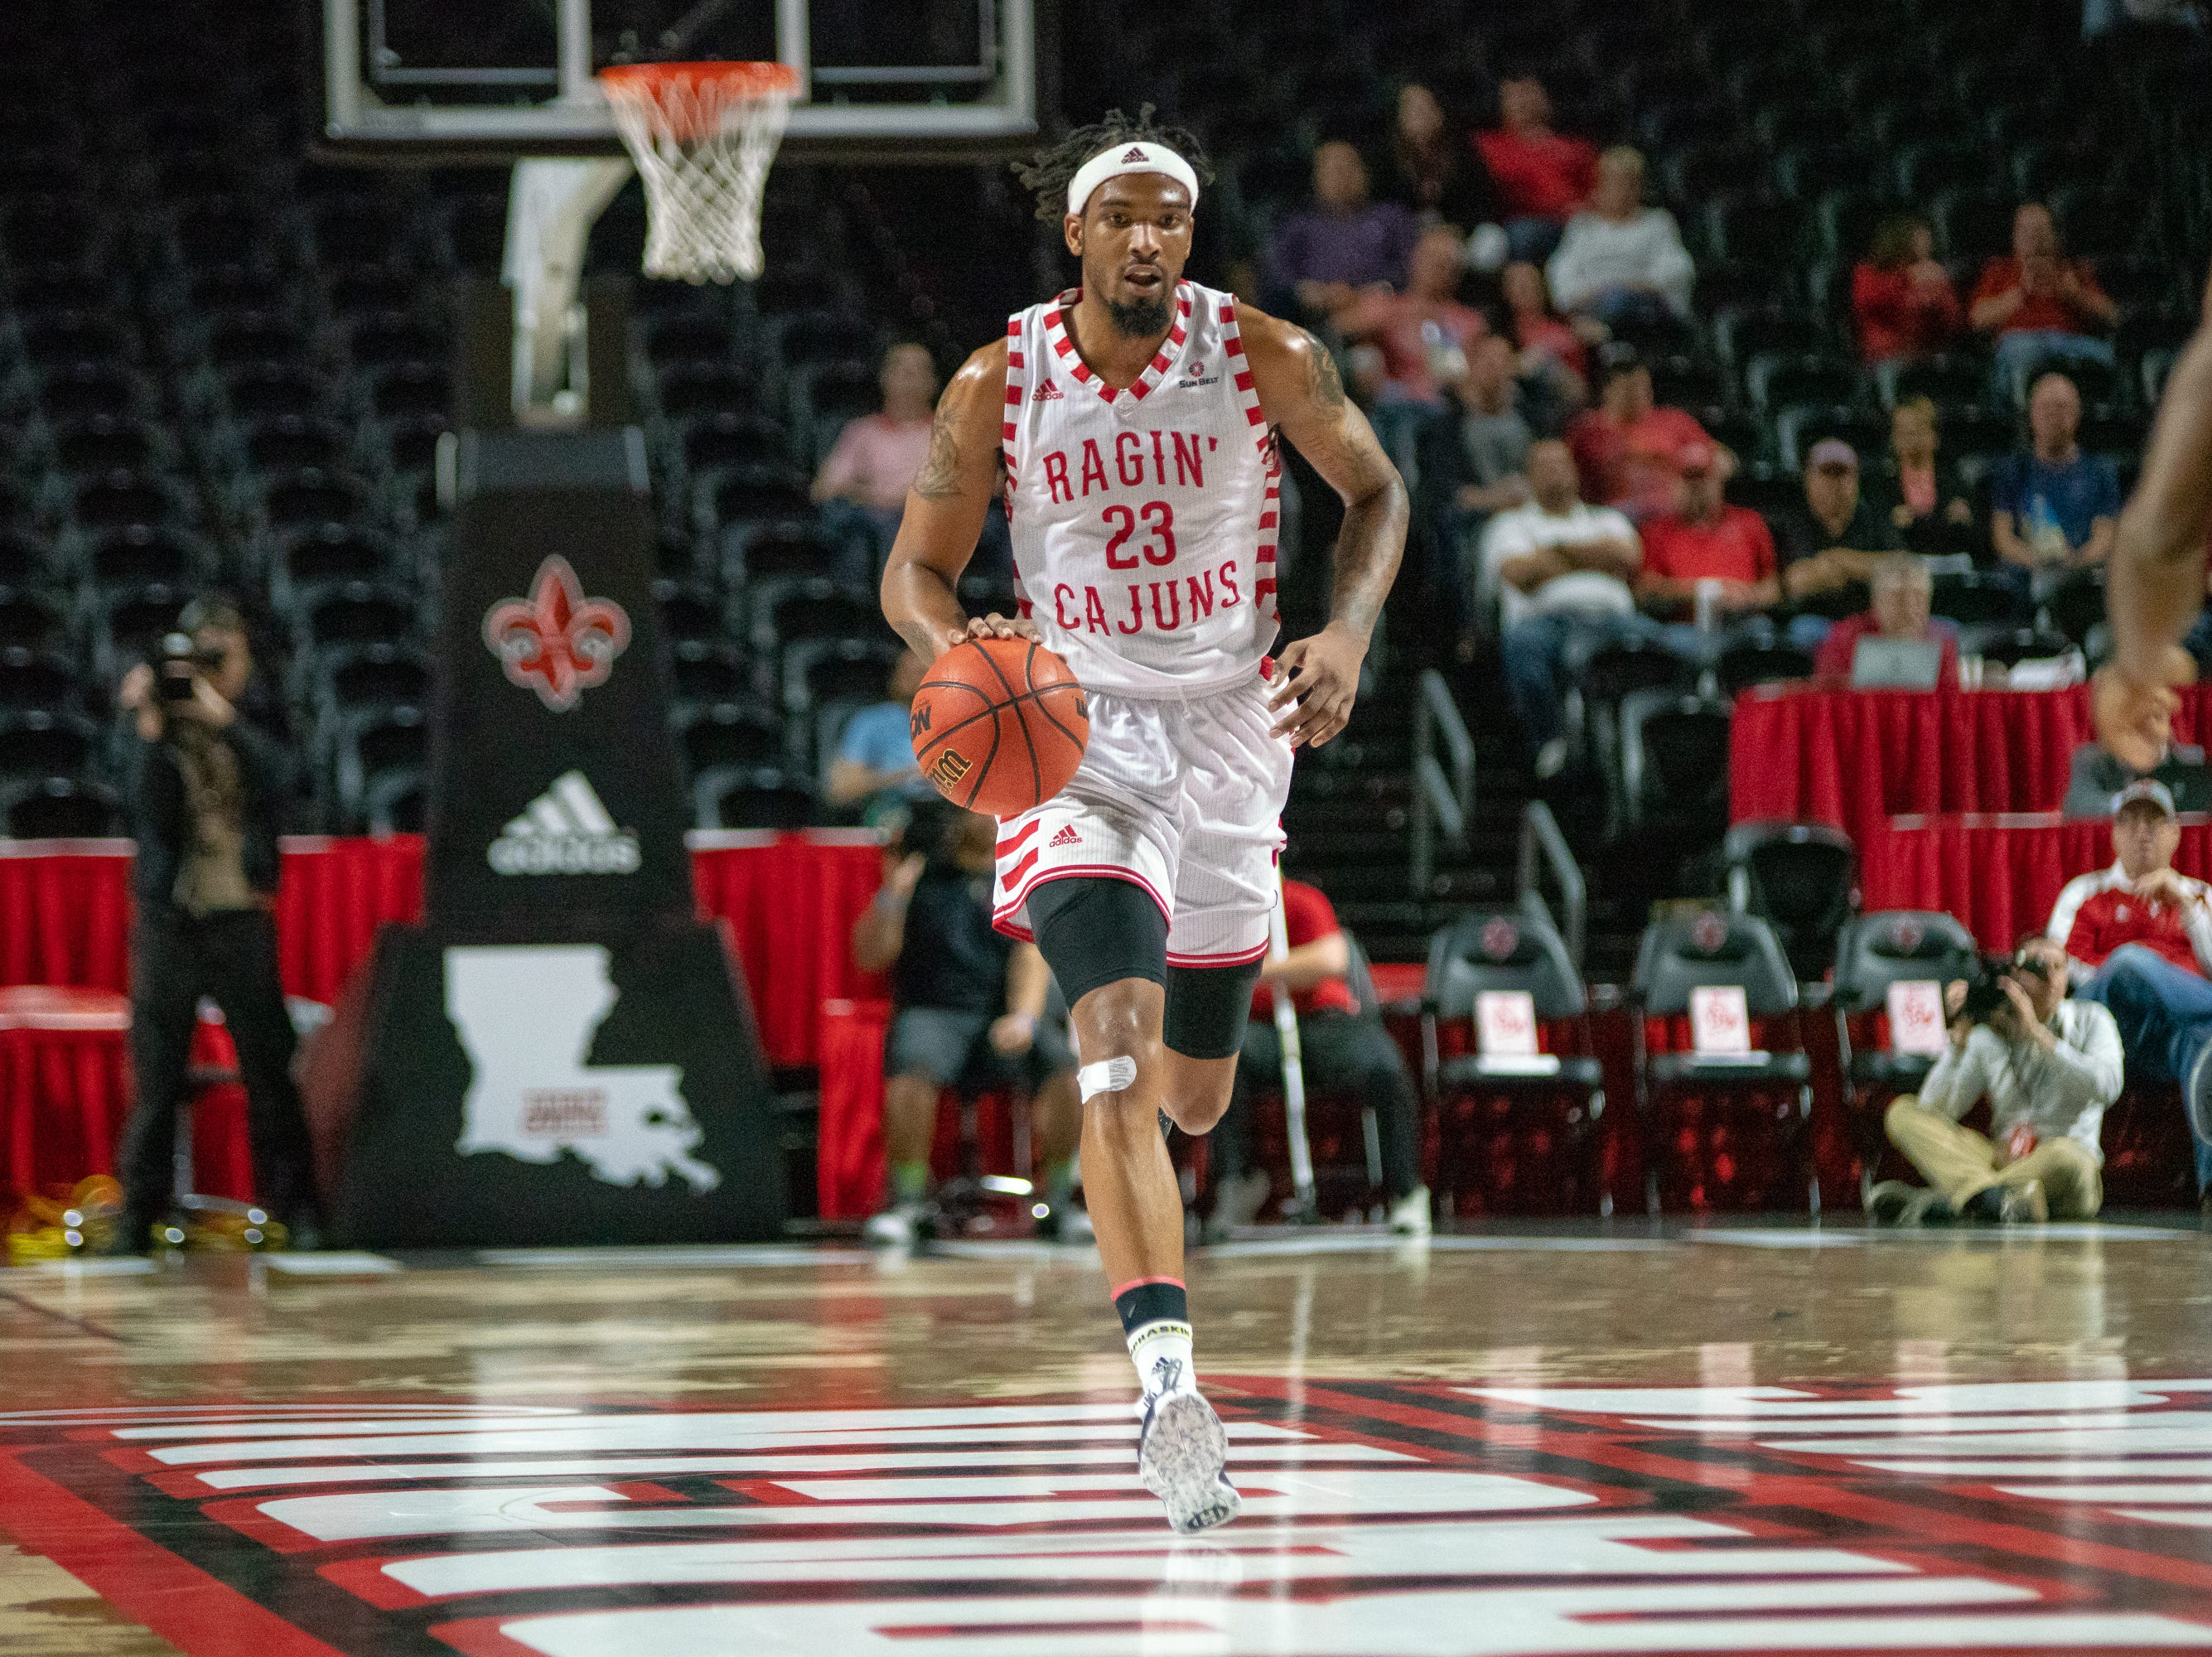 UL's JaKeenan Gant sprints down the court as the Ragin' Cajuns take on the Georgia Southern Eagles at the Cajundome on Feb. 6, 2019.